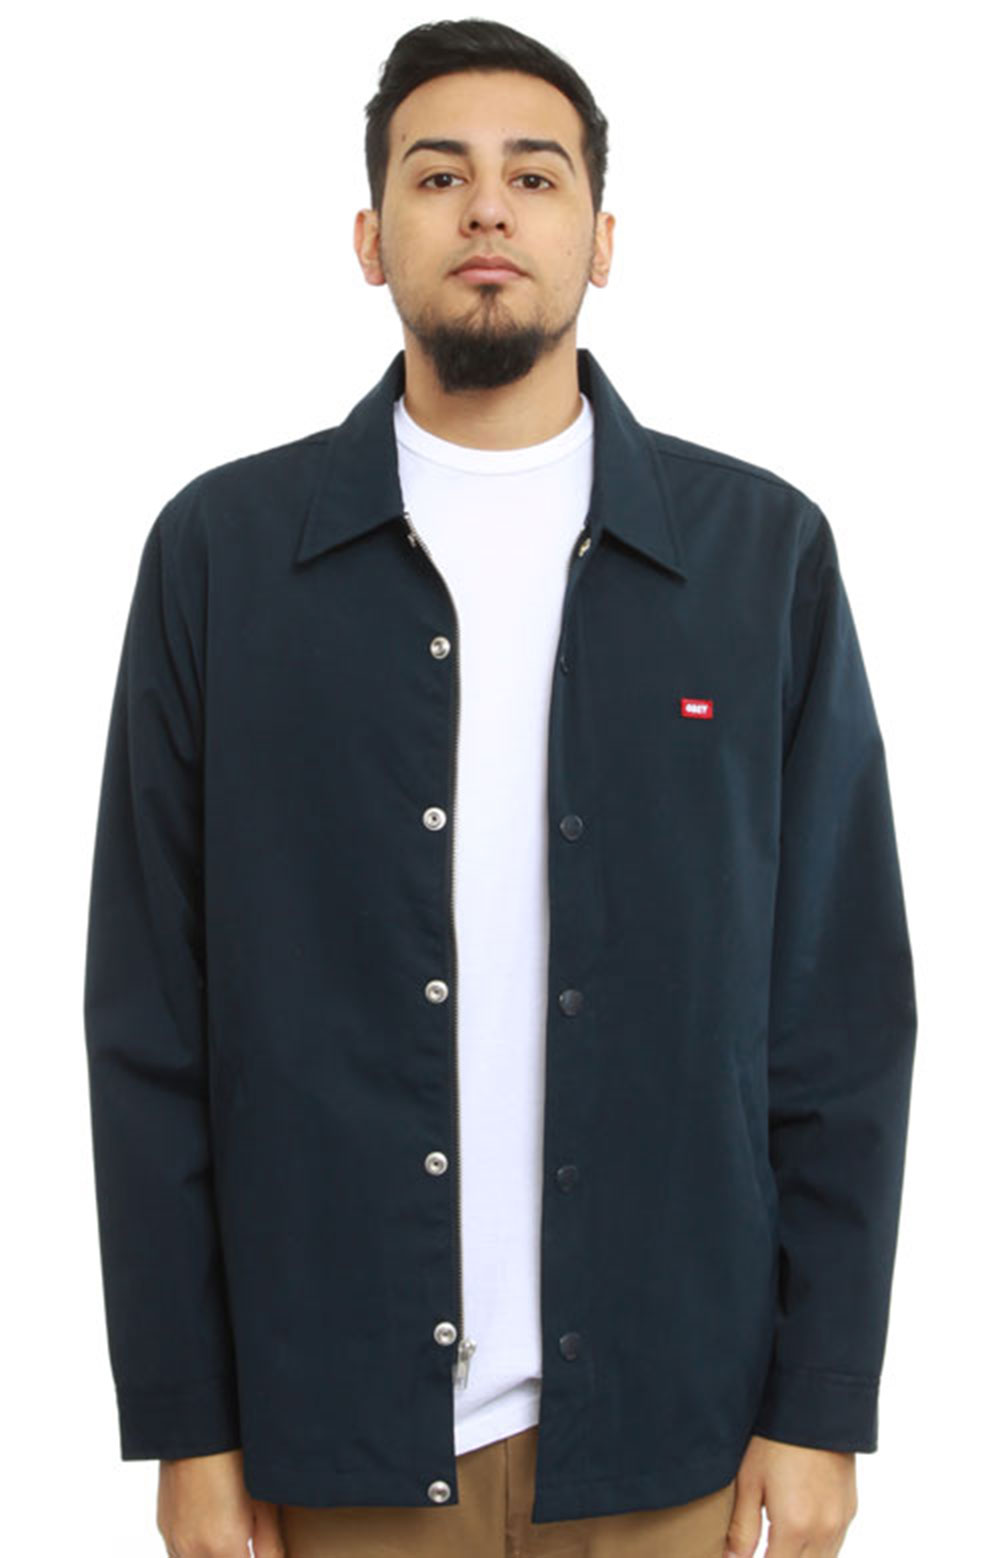 Enforcement Jacket - Midnight Navy